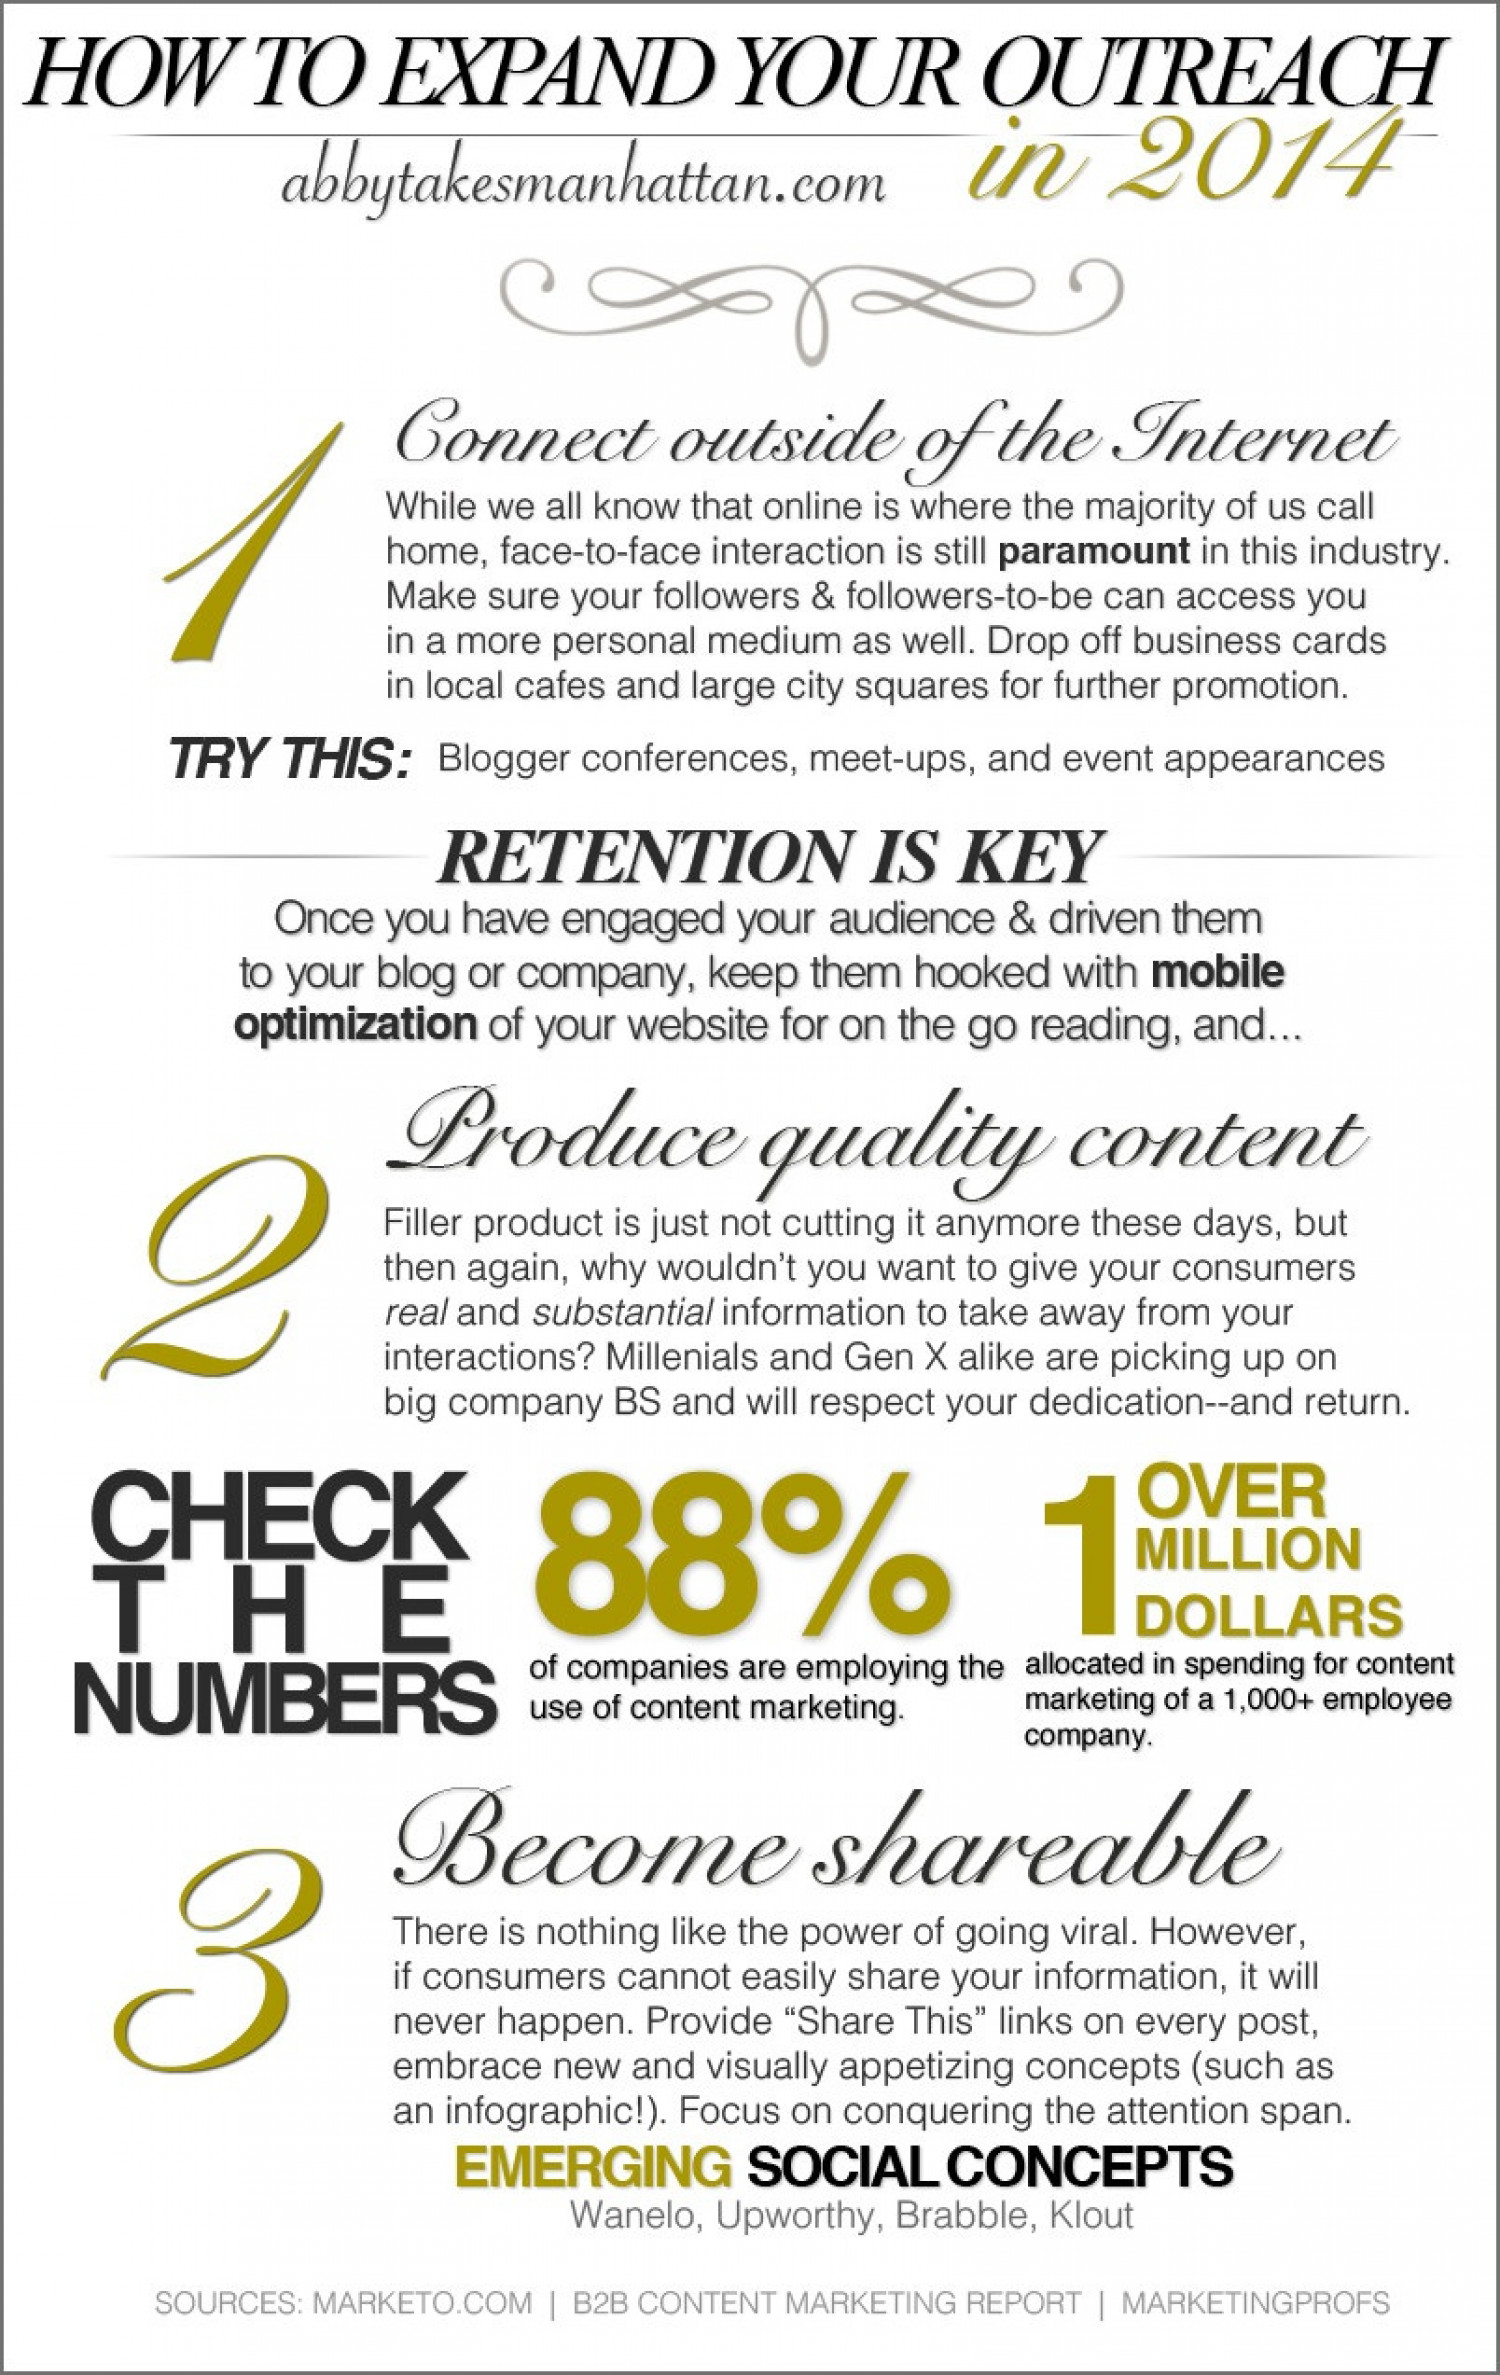 How To Market Yourself and Expand Your Outreach in 2014 Infographic